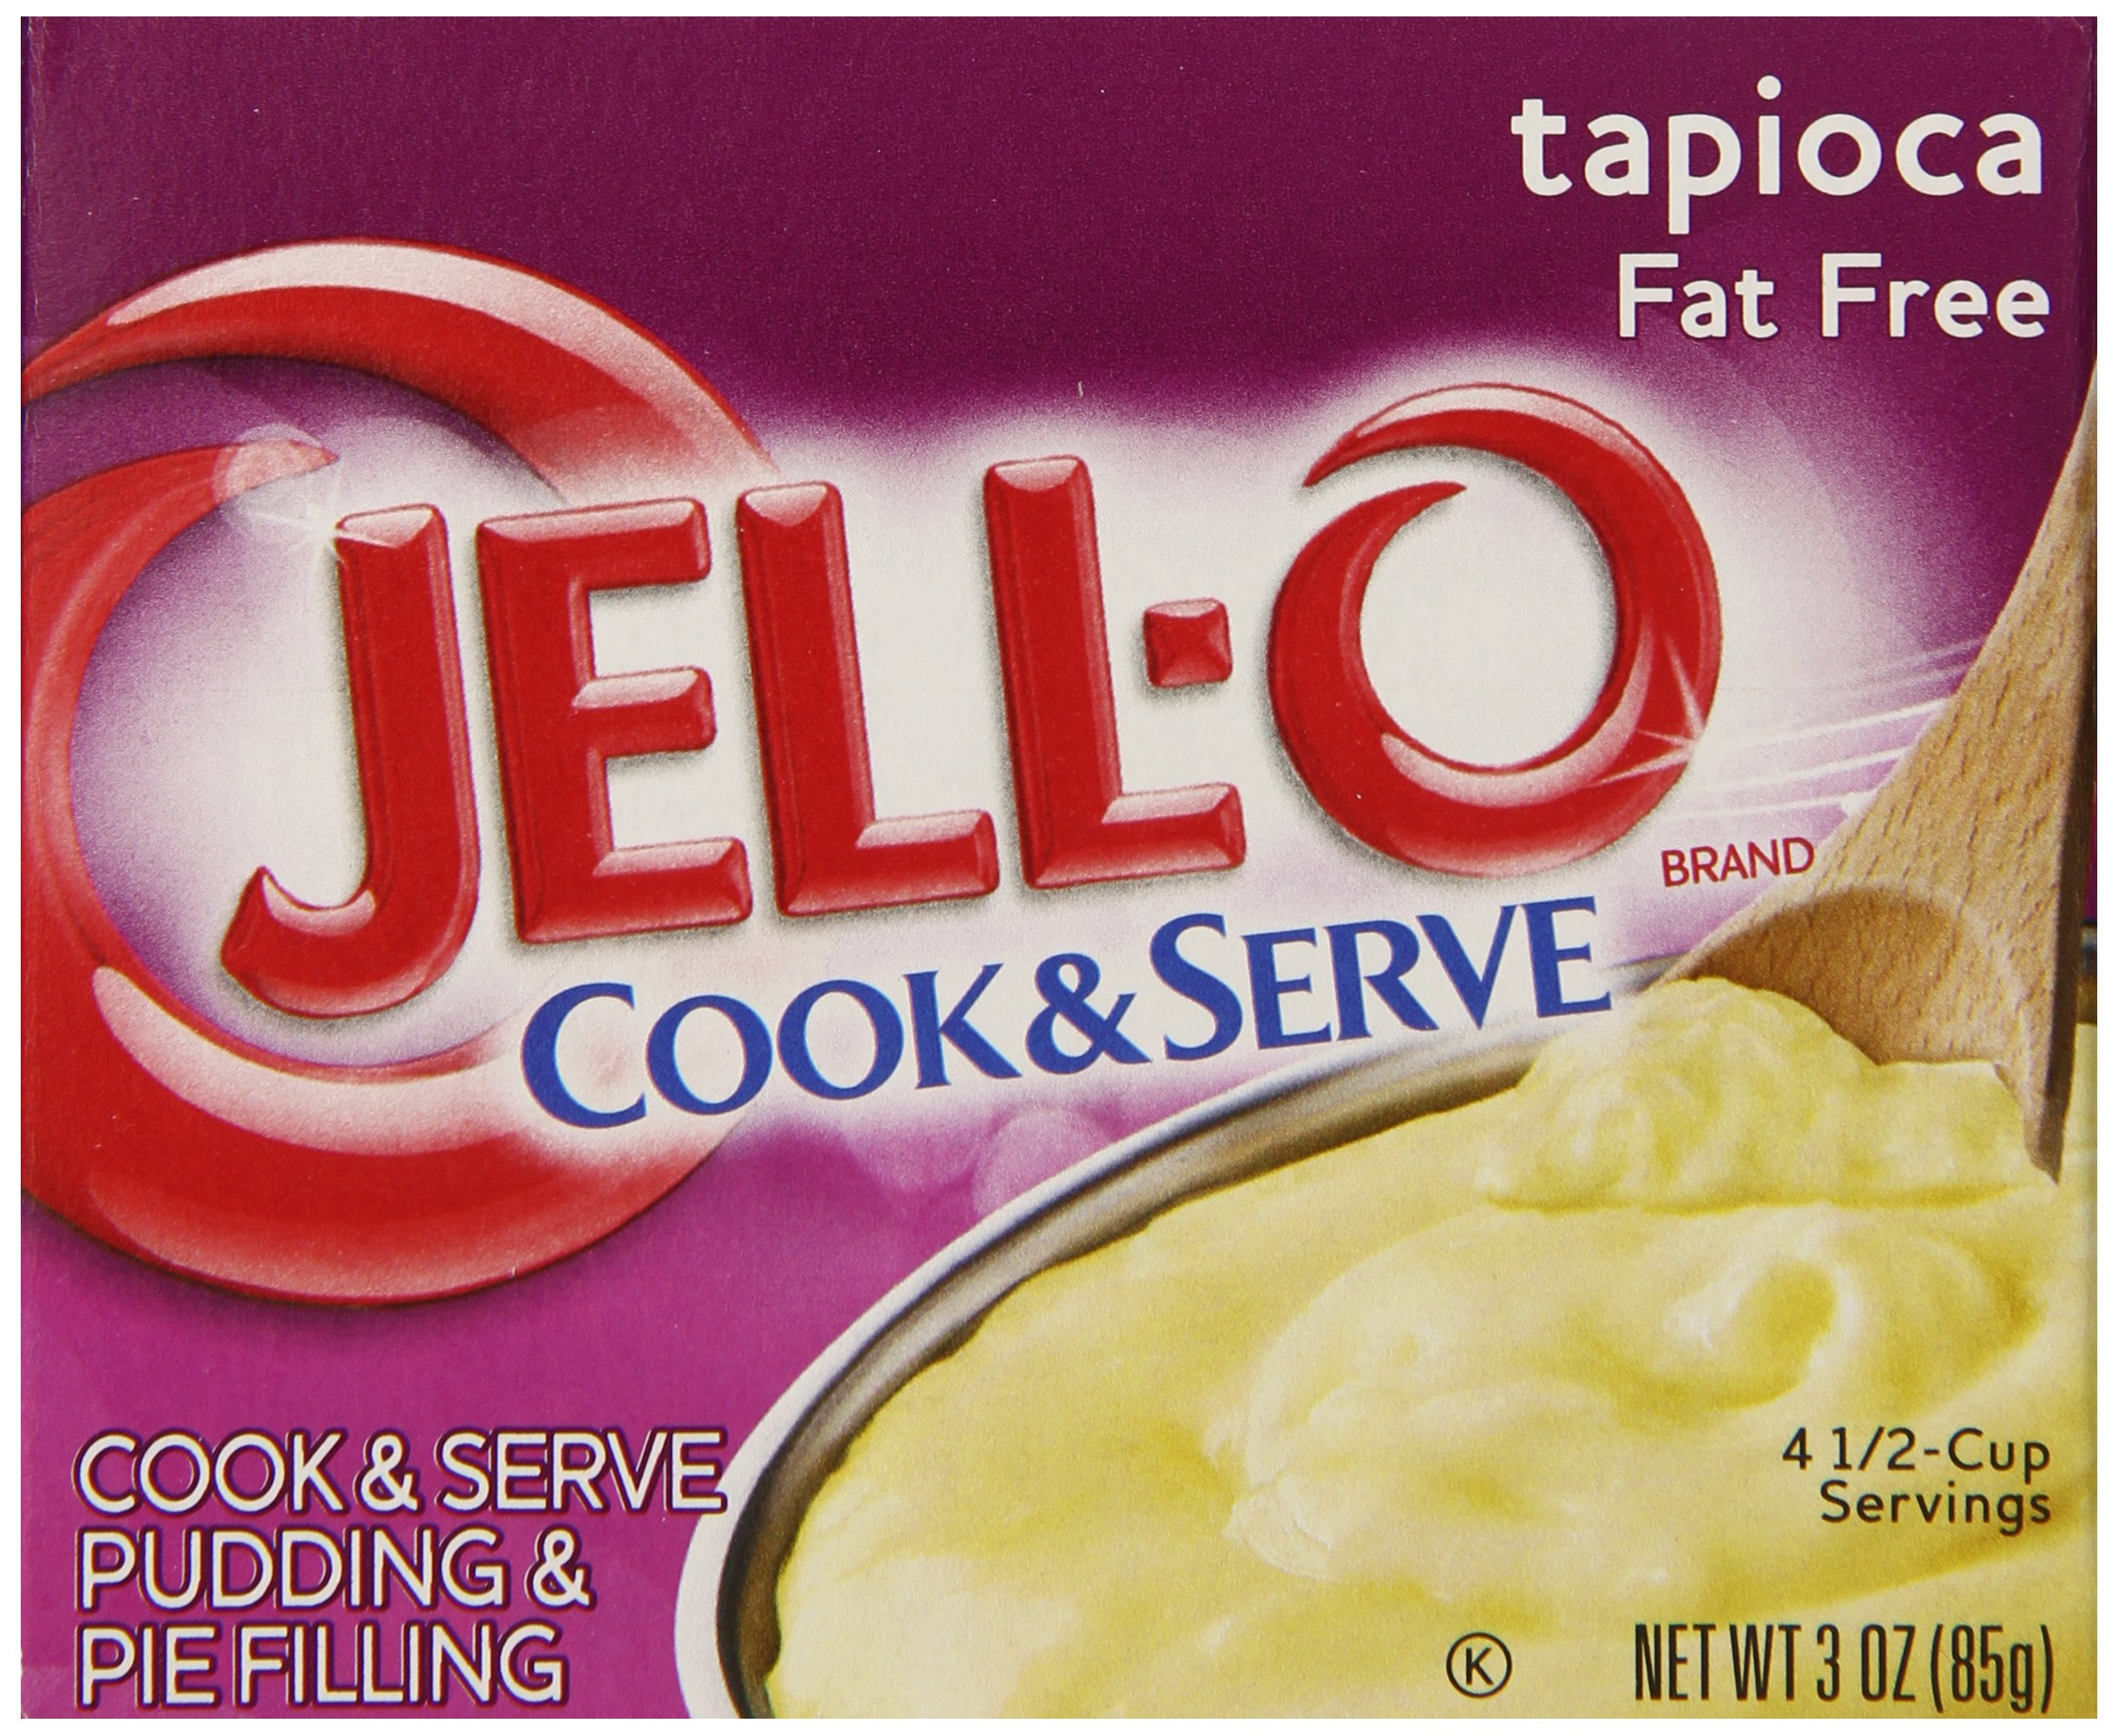 JELL-O Fat Free Tapioca Pudding & Pie Filling Mix (3 oz Boxes, Pack of 24) by Jell-O